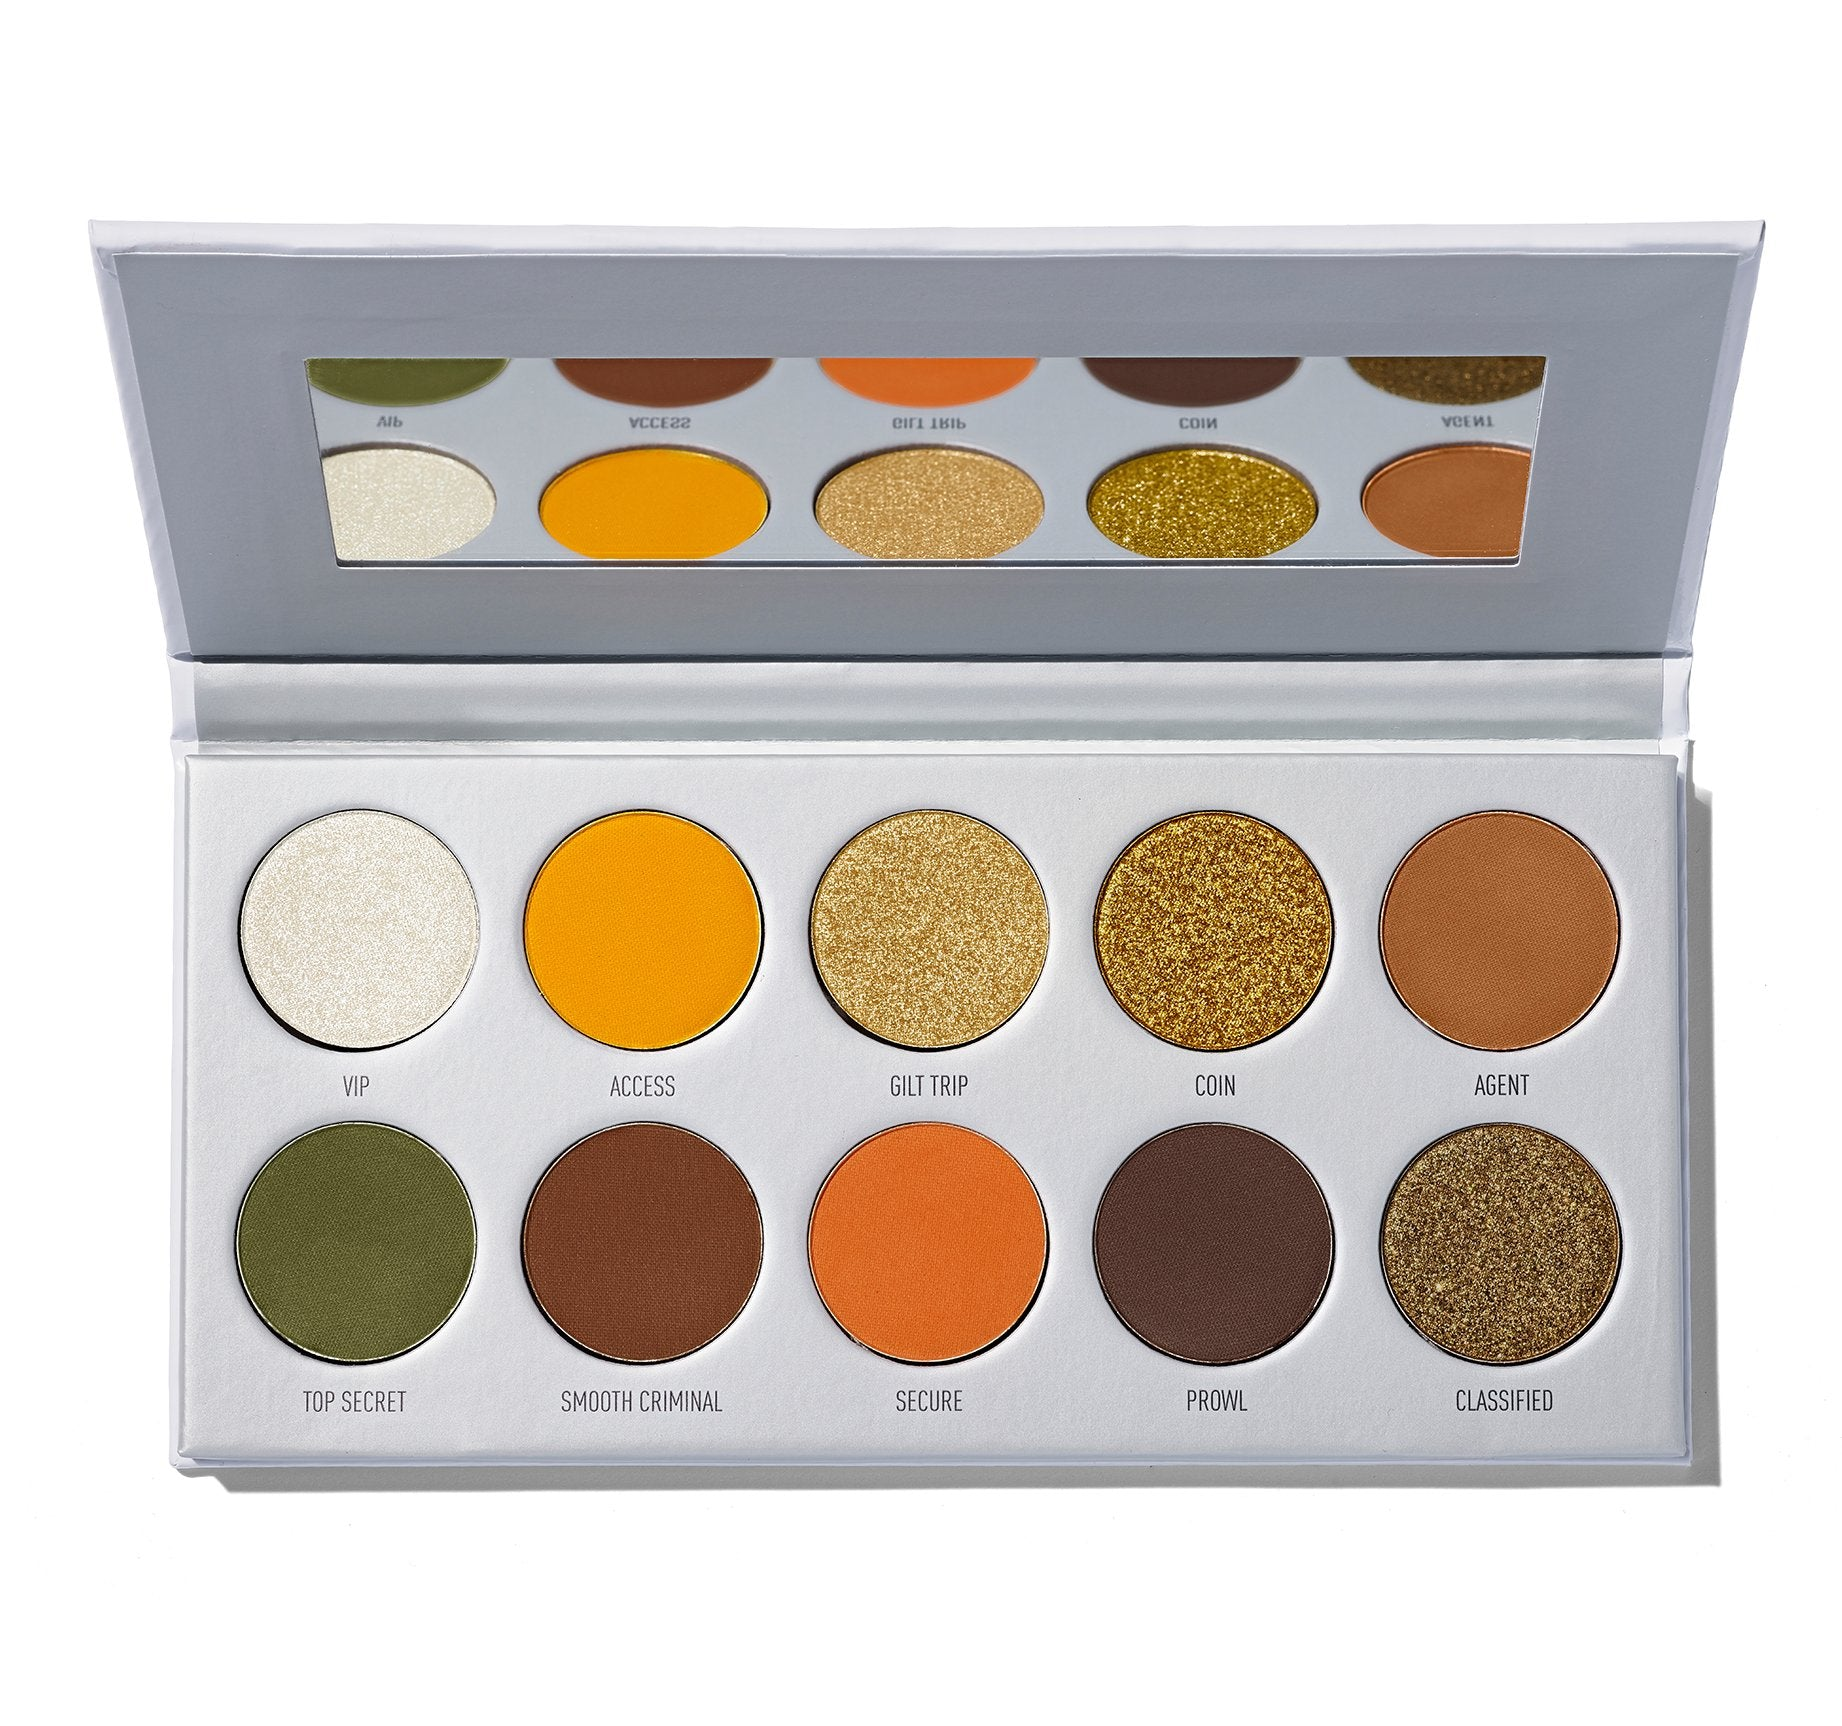 MORPHE X JACLYN HILL ARMED & GORGEOUS EYESHADOW PALETTE, view larger image